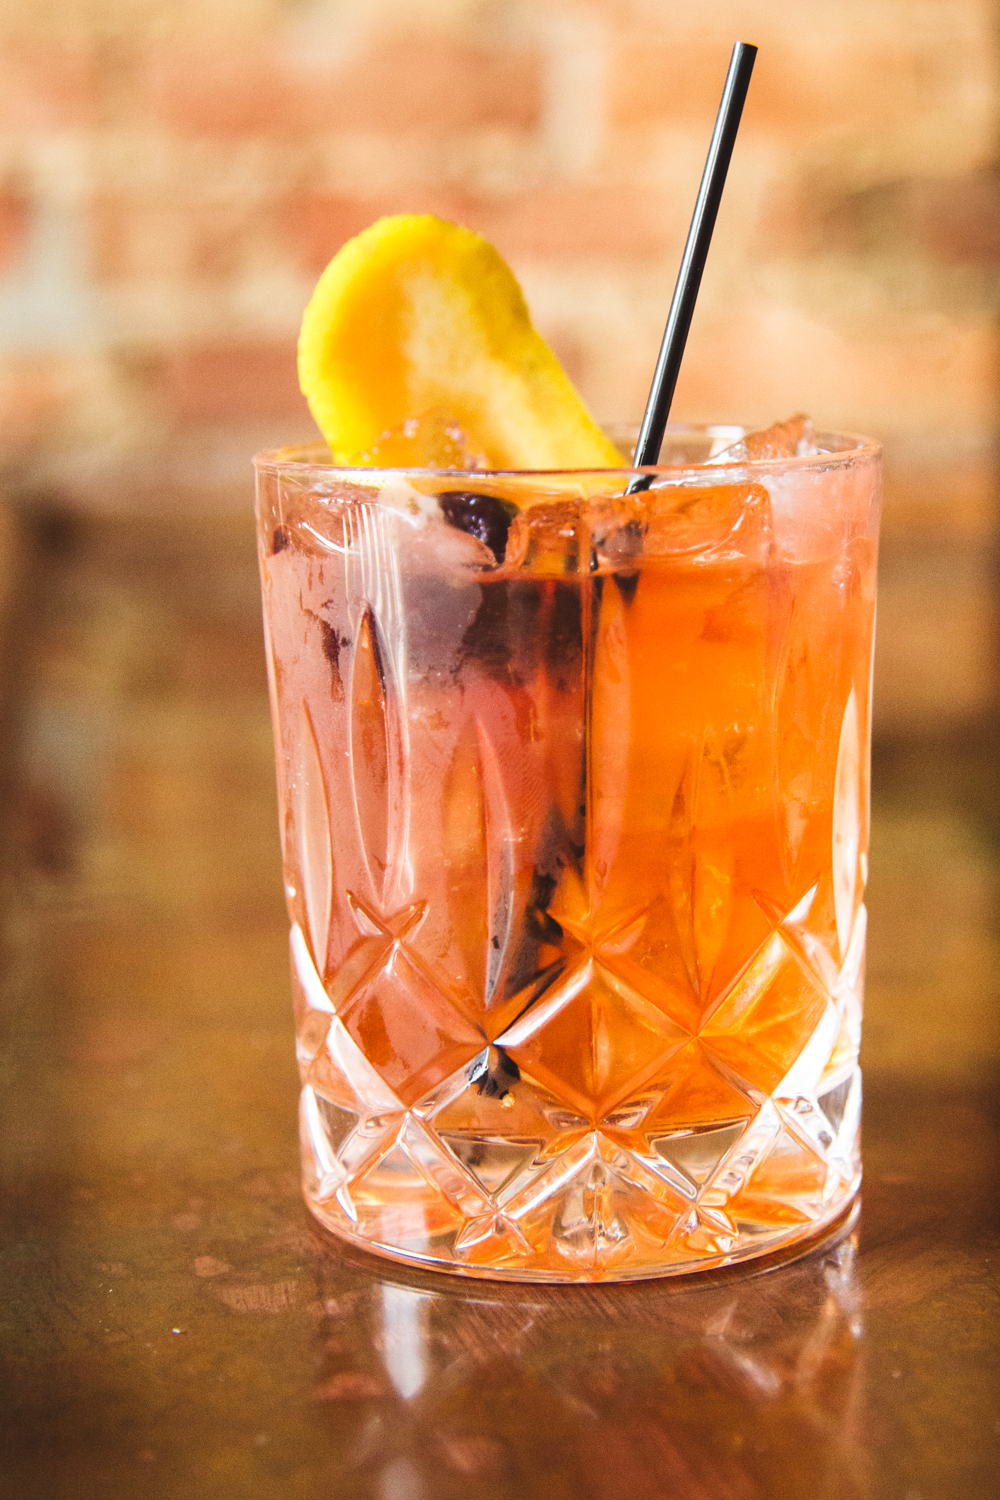 Old Fashioned made with Old Forester / Image: Catherine Viox